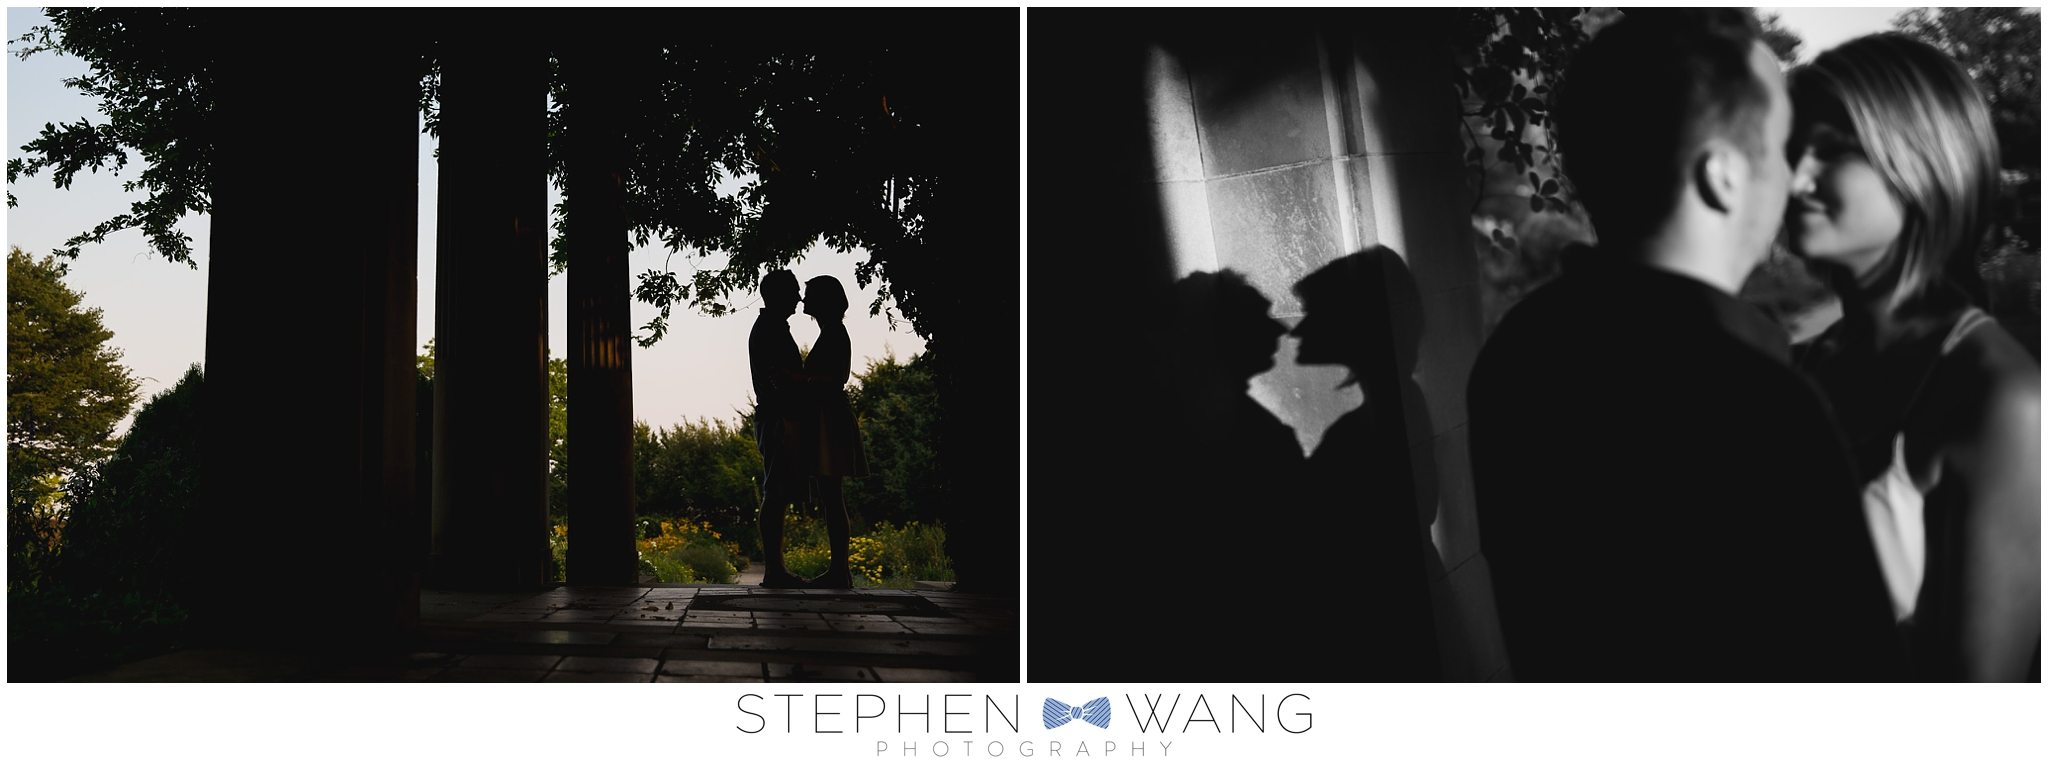 stephen wang photography connecticut wedding photographer harkness park engagement session ct shoreline eolia mansion _0005.jpg